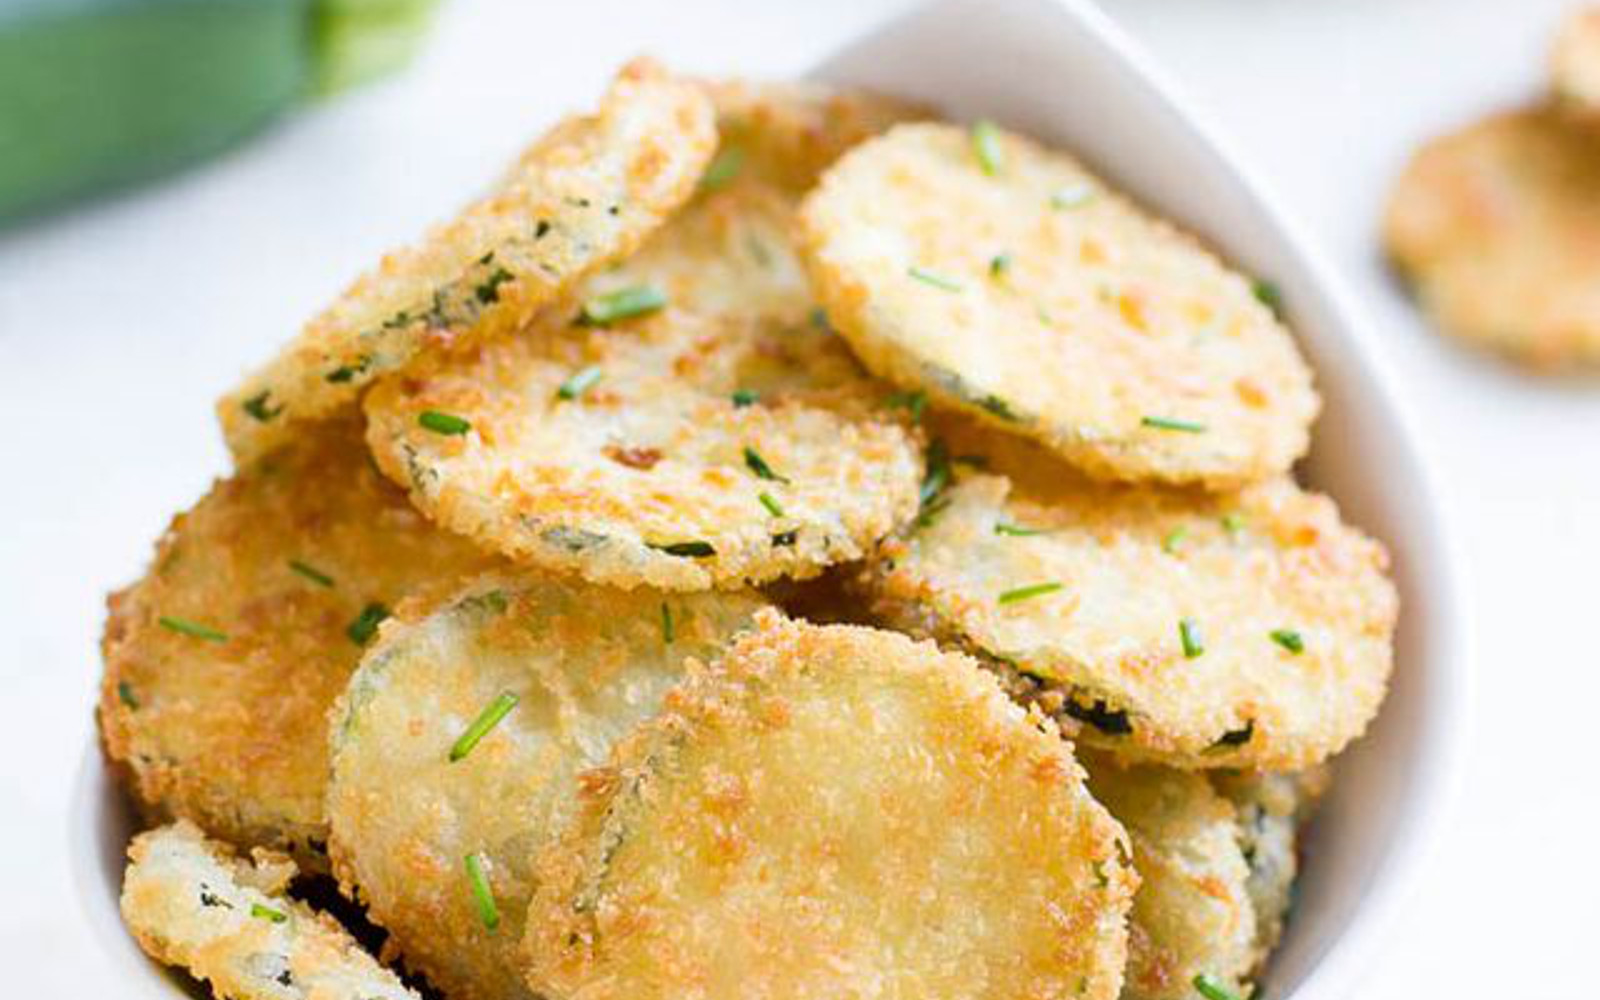 panko crusted zucchini chips